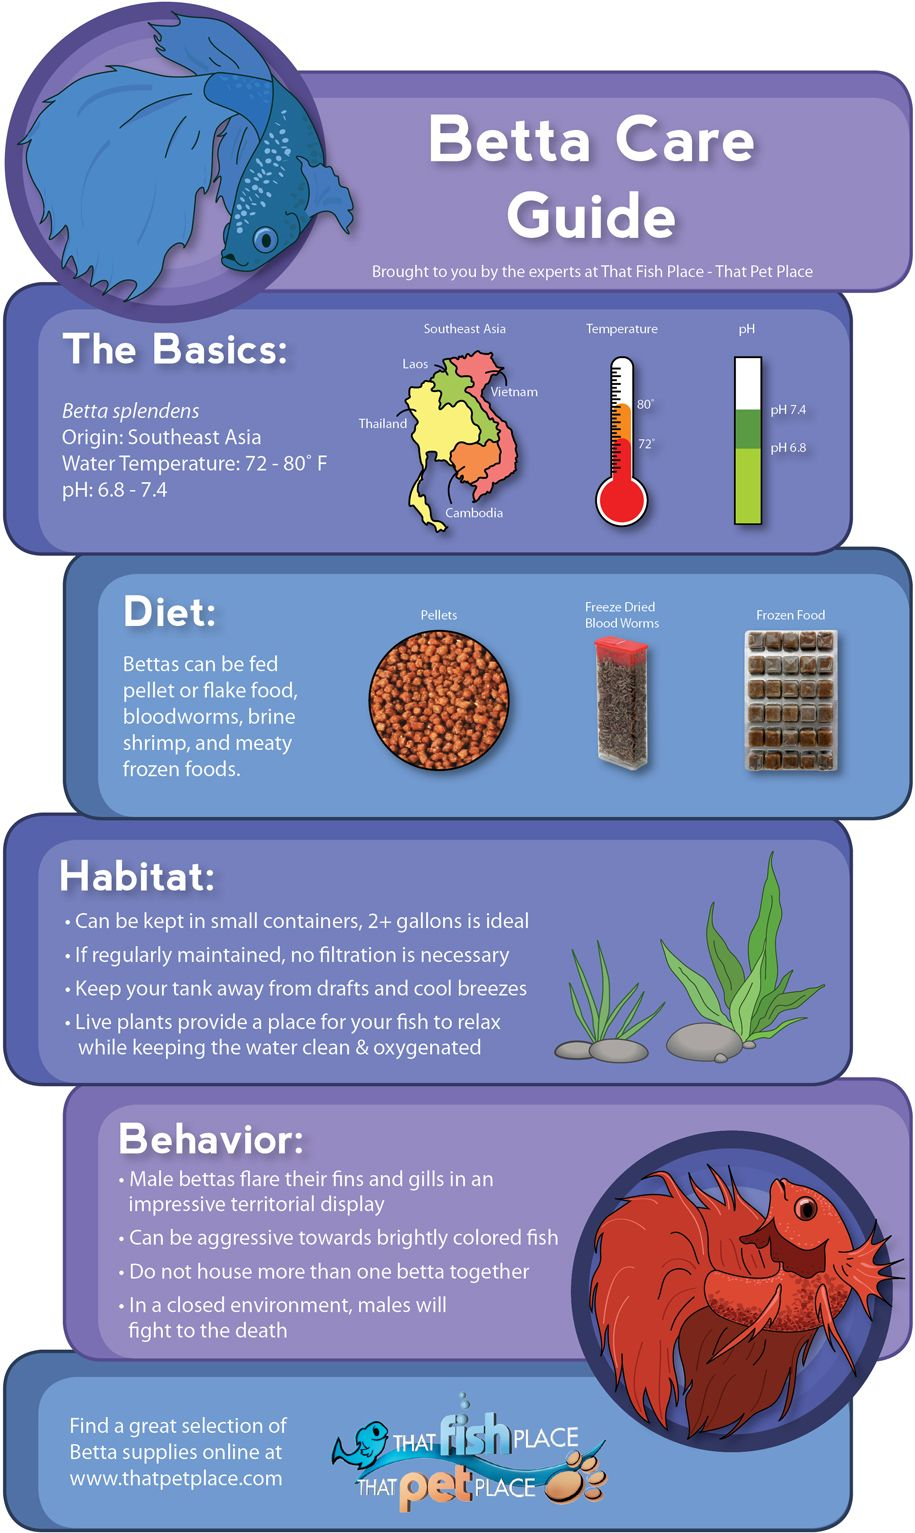 Betta care guide infographic fish pets aquarium for Caring for a betta fish in a bowl